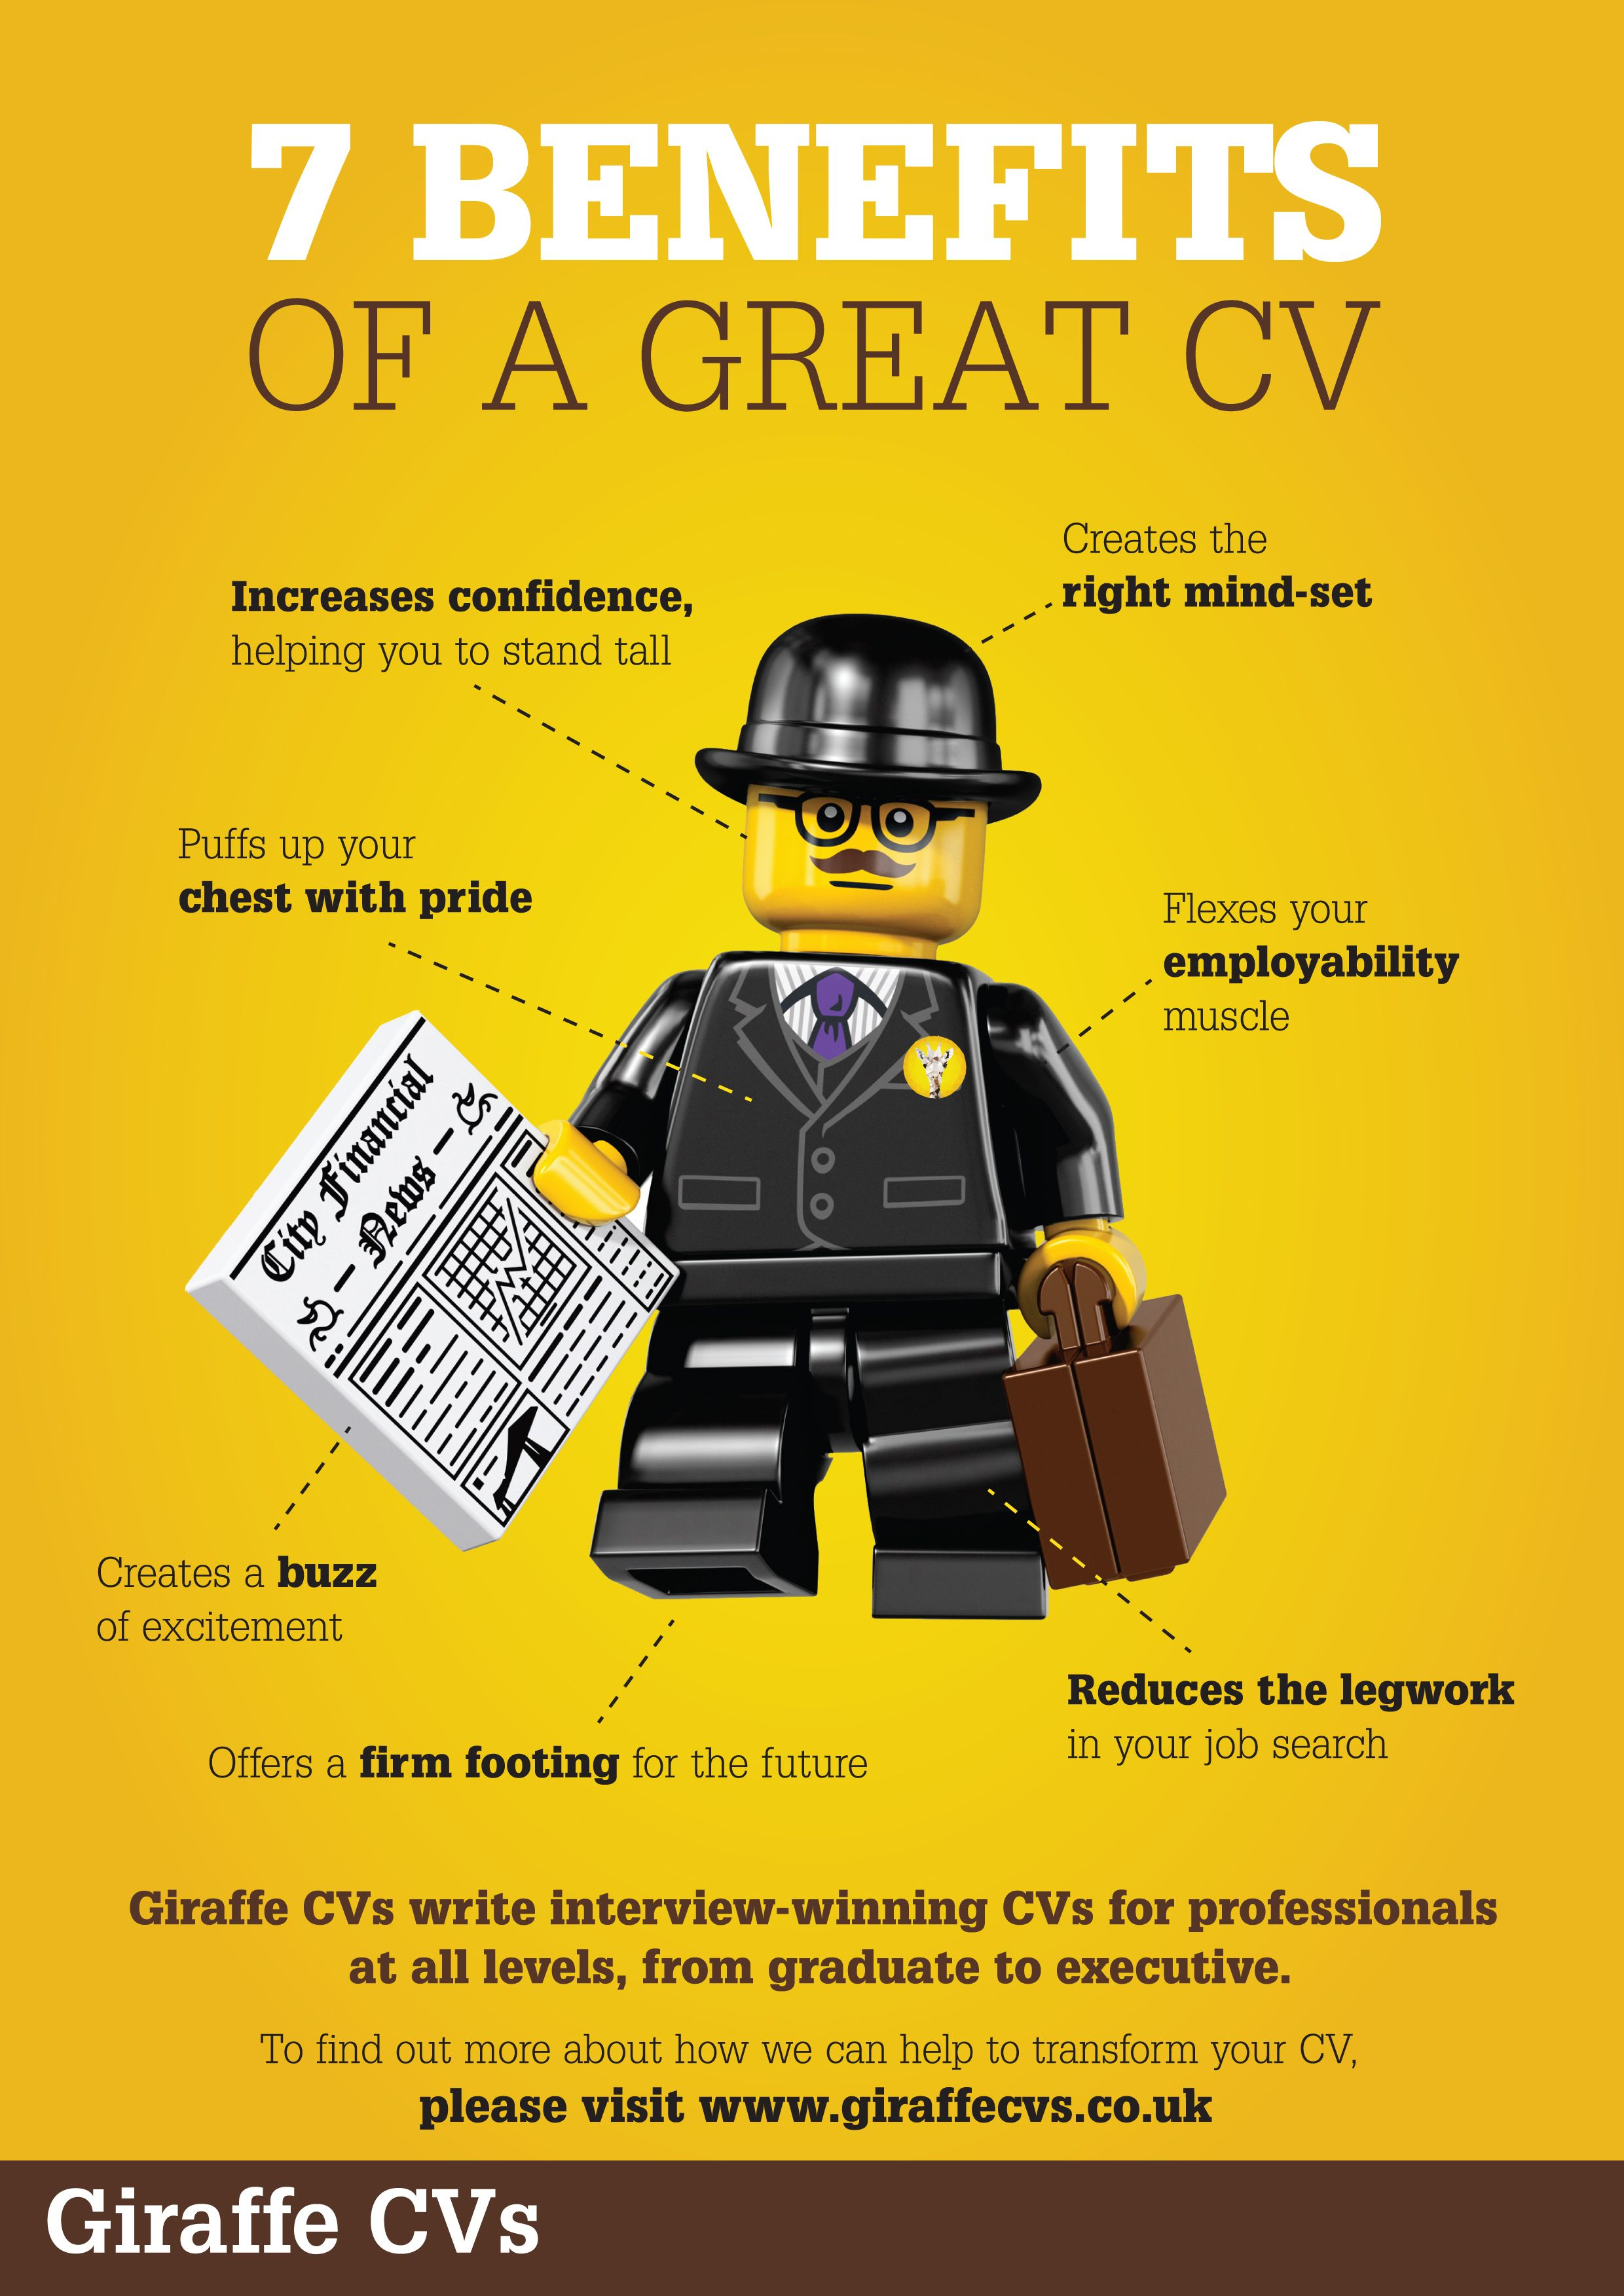 Seven benefits of a great CV! To order yours please visit